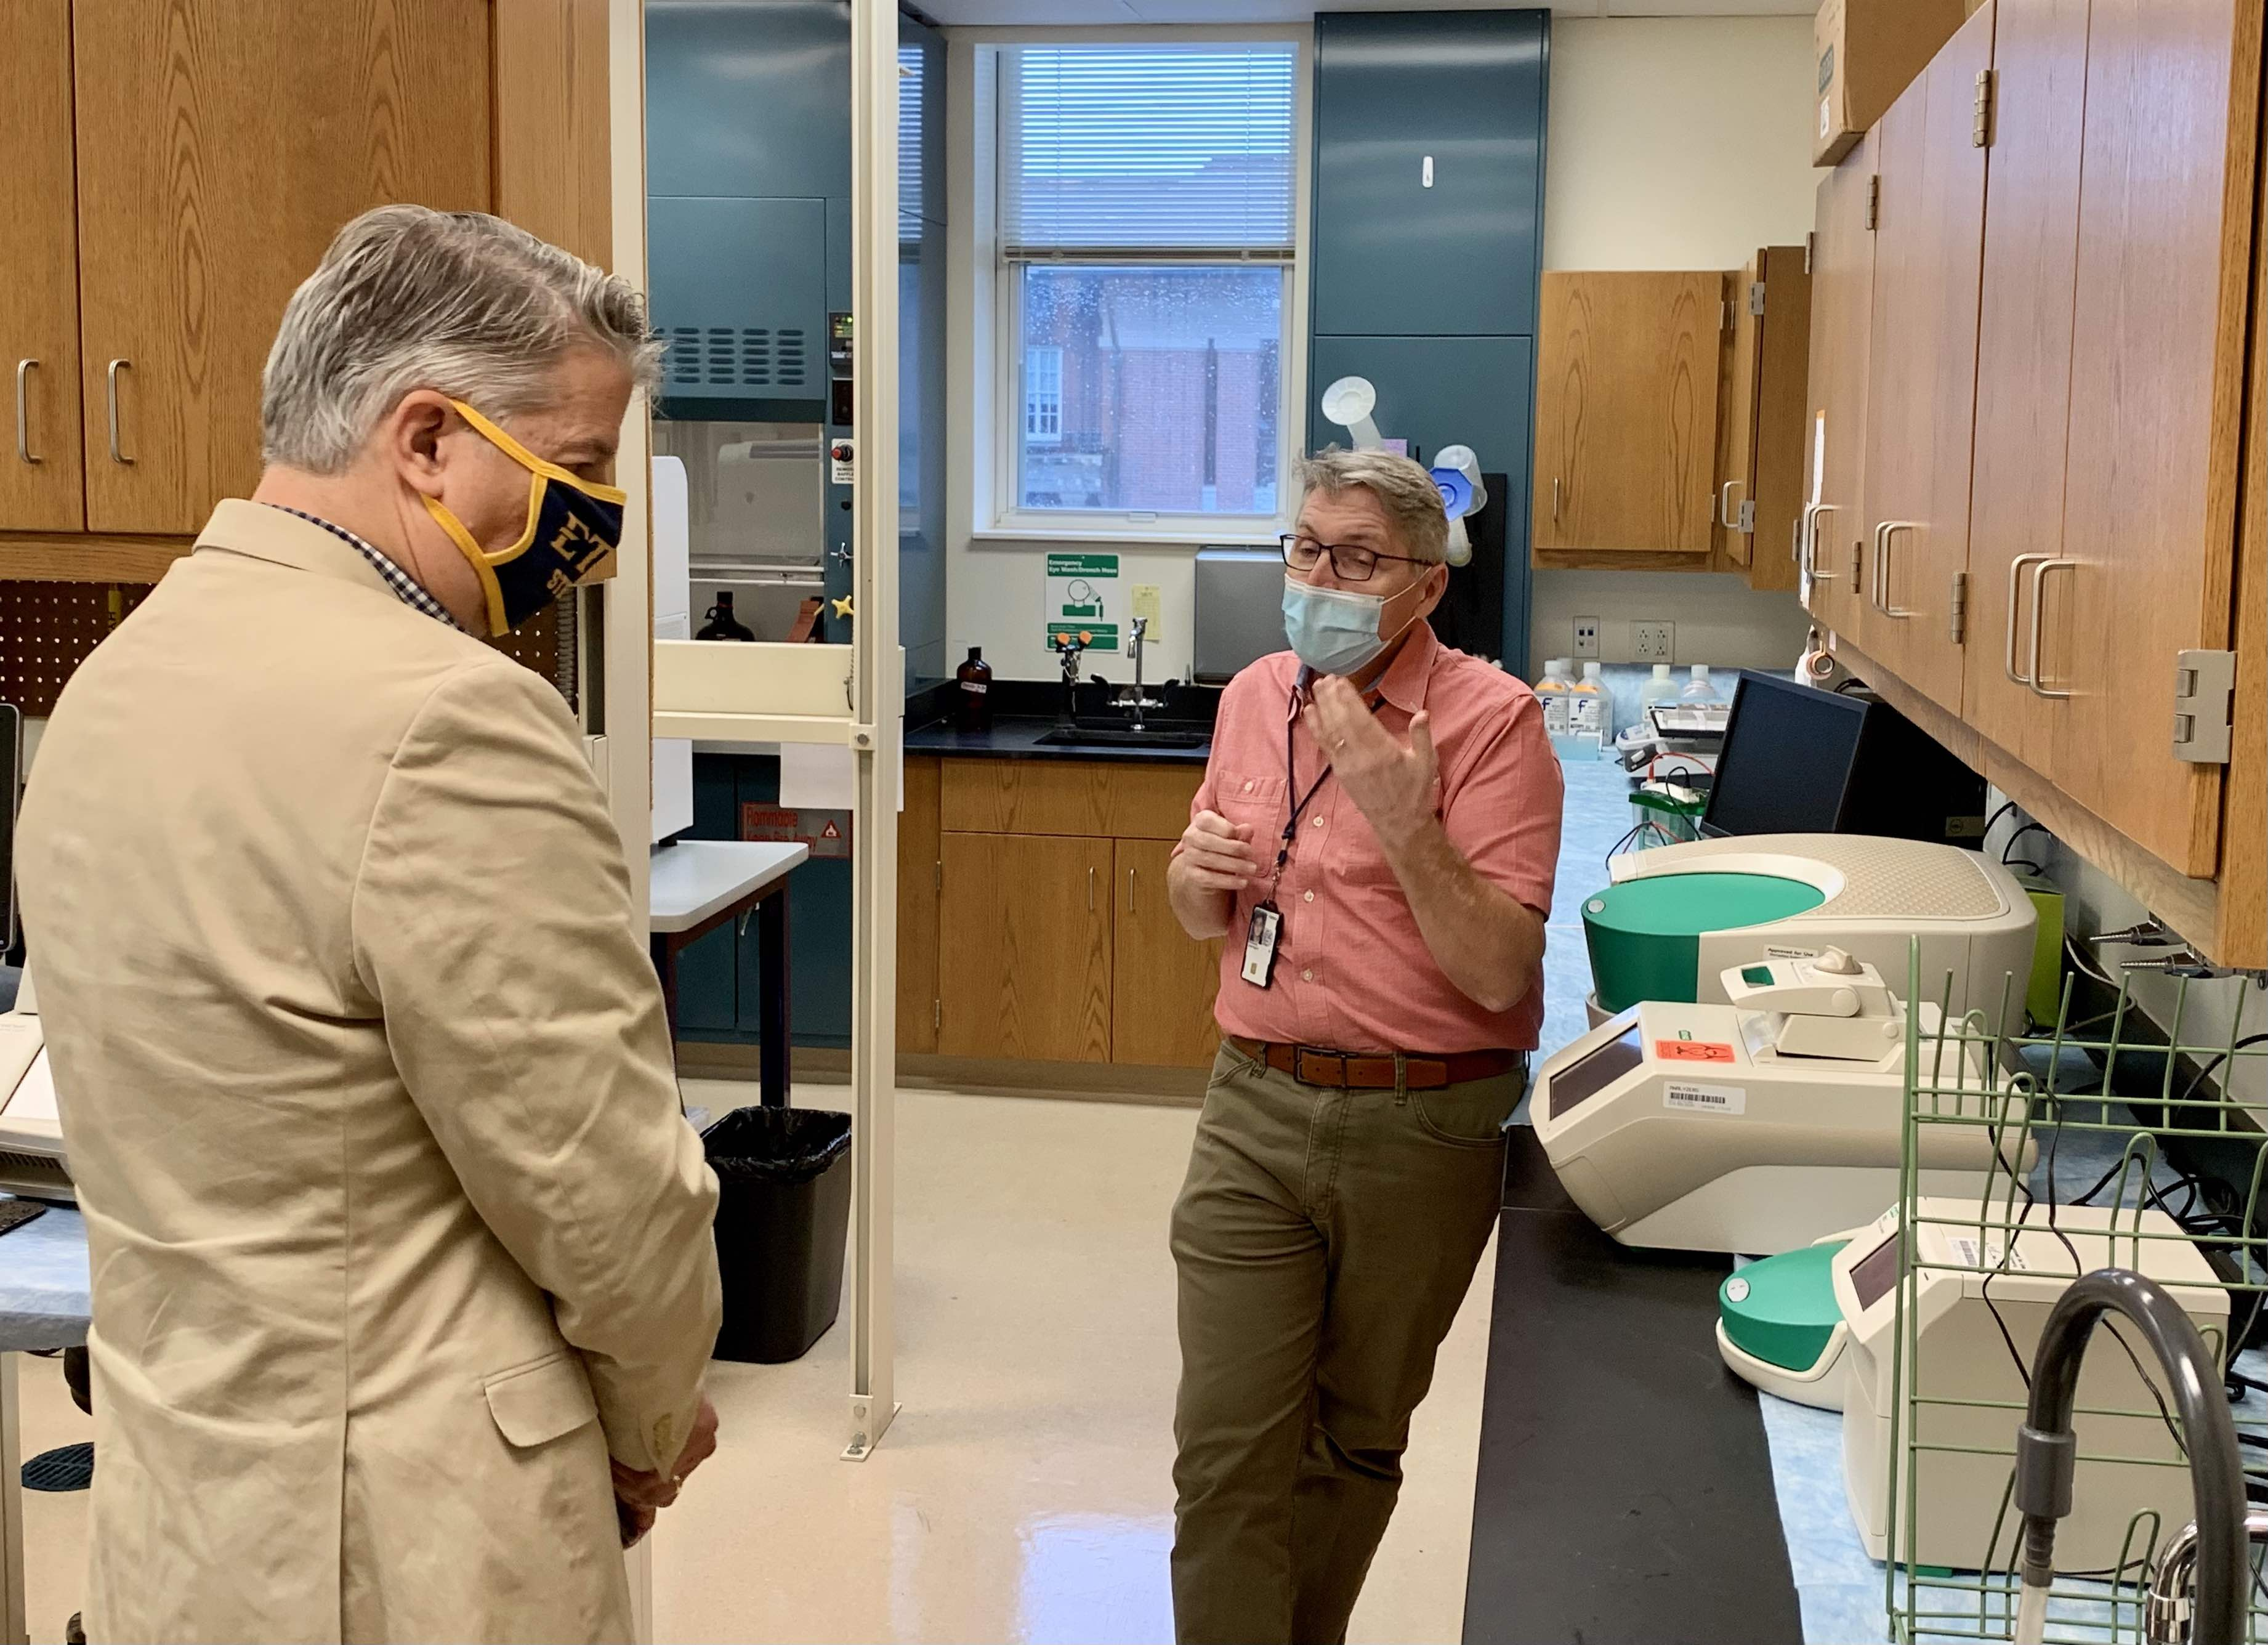 Two men, Jon Moorman and David Golden, talk in a laboratory of science equipment.